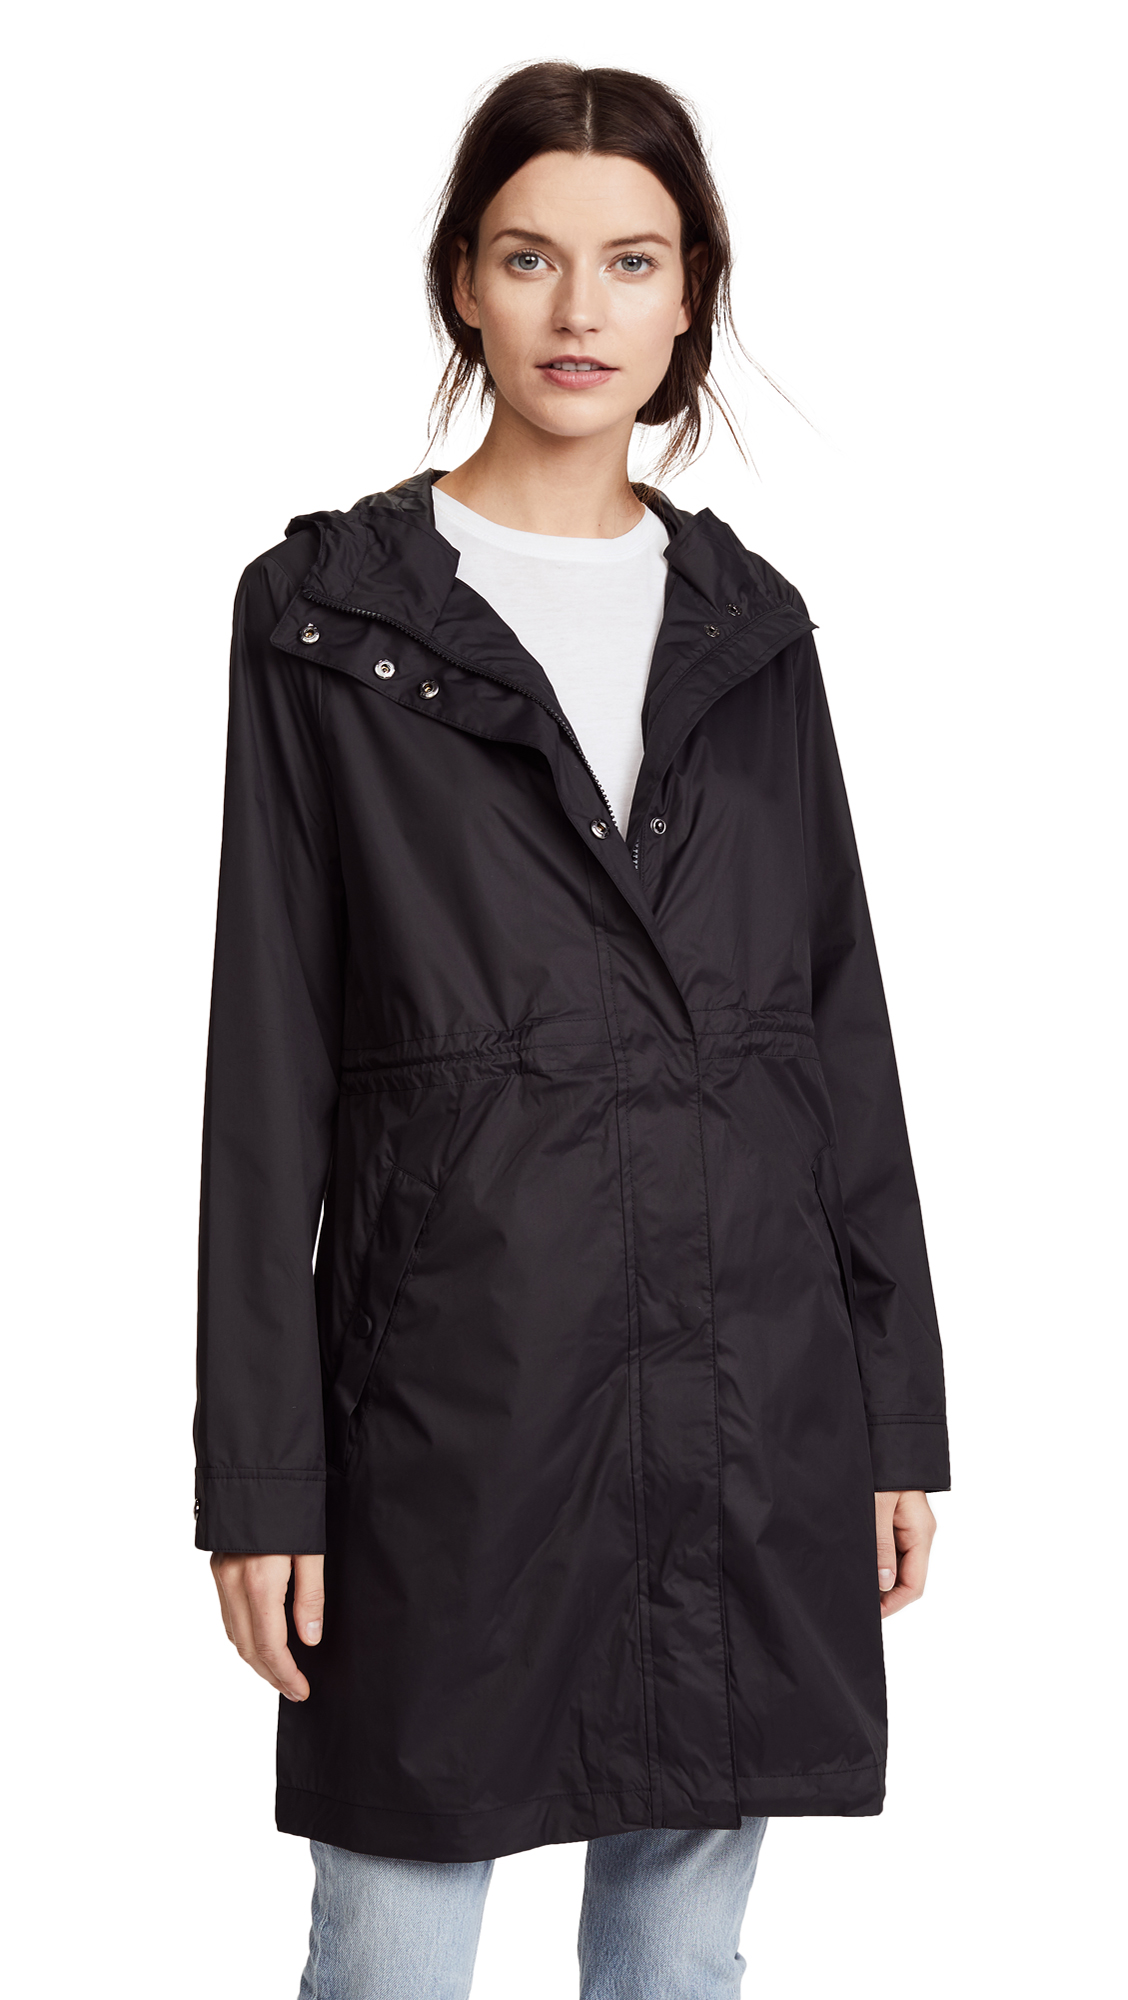 Hunter Boots Packable Drawstring Coat - Black